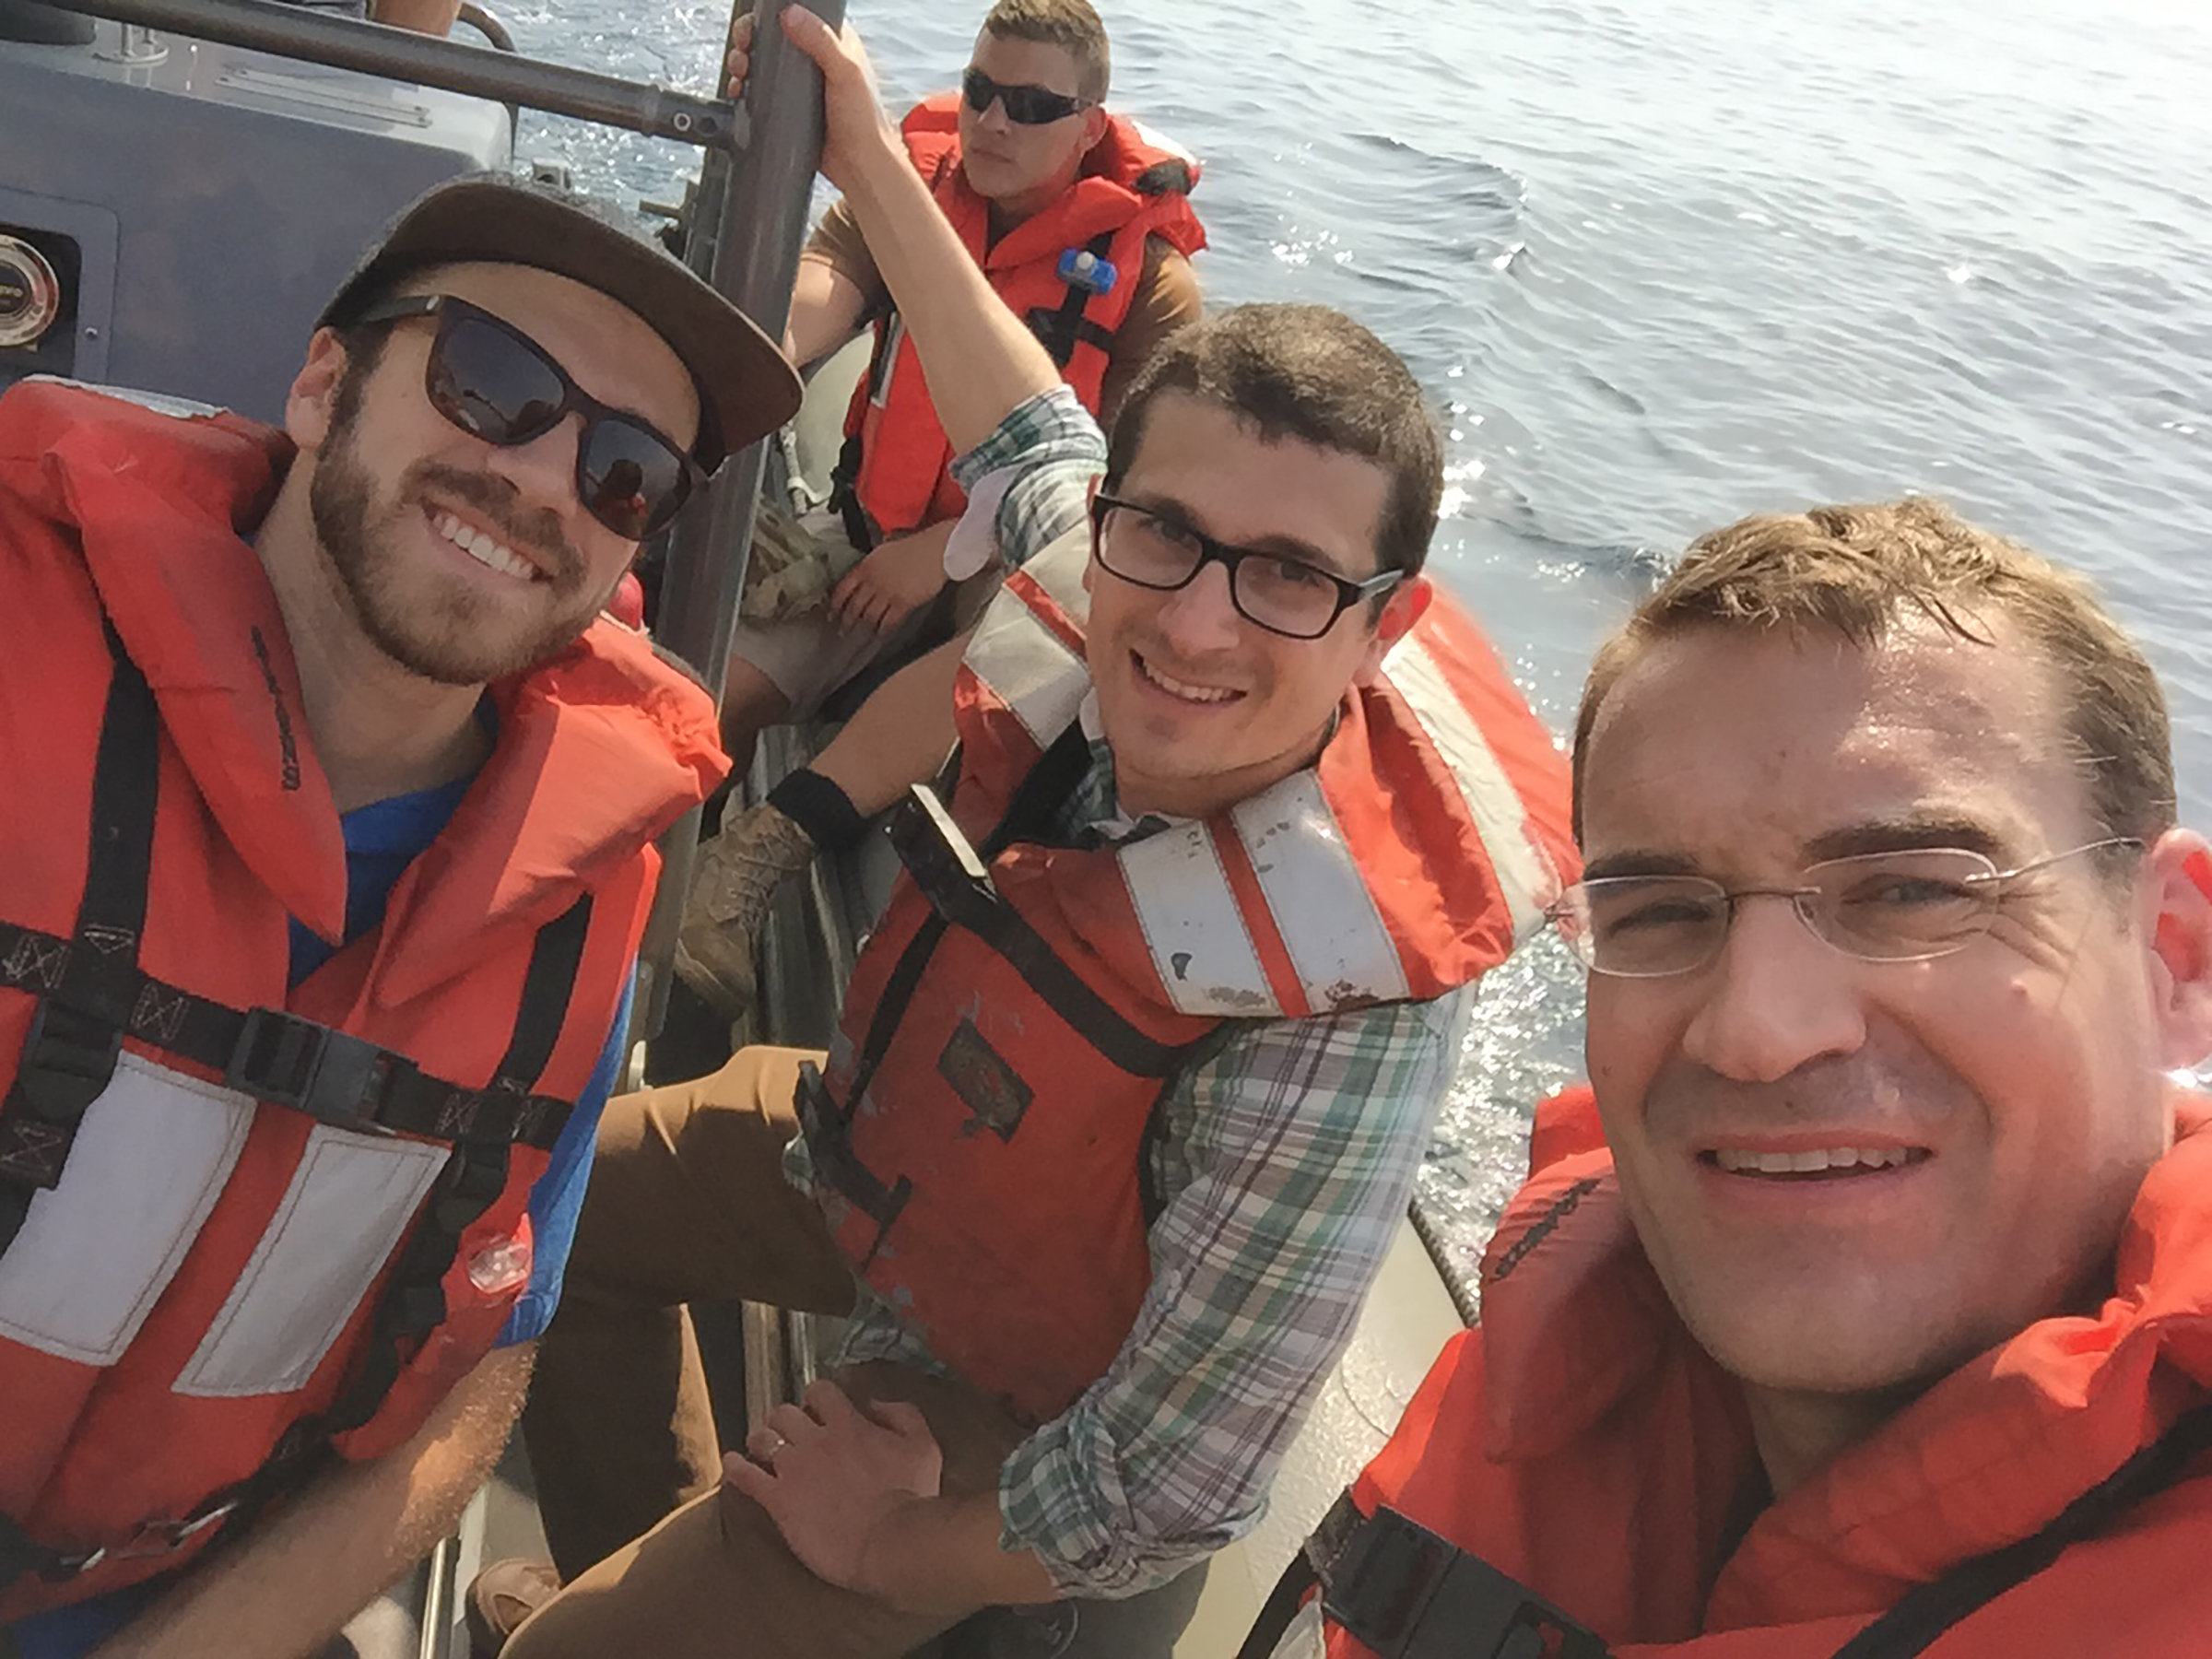 The Reporting Team: Jason Paladino, Mike Hixenbaugh and Zachary Stauffer in the Persian Gulf in April 2016.